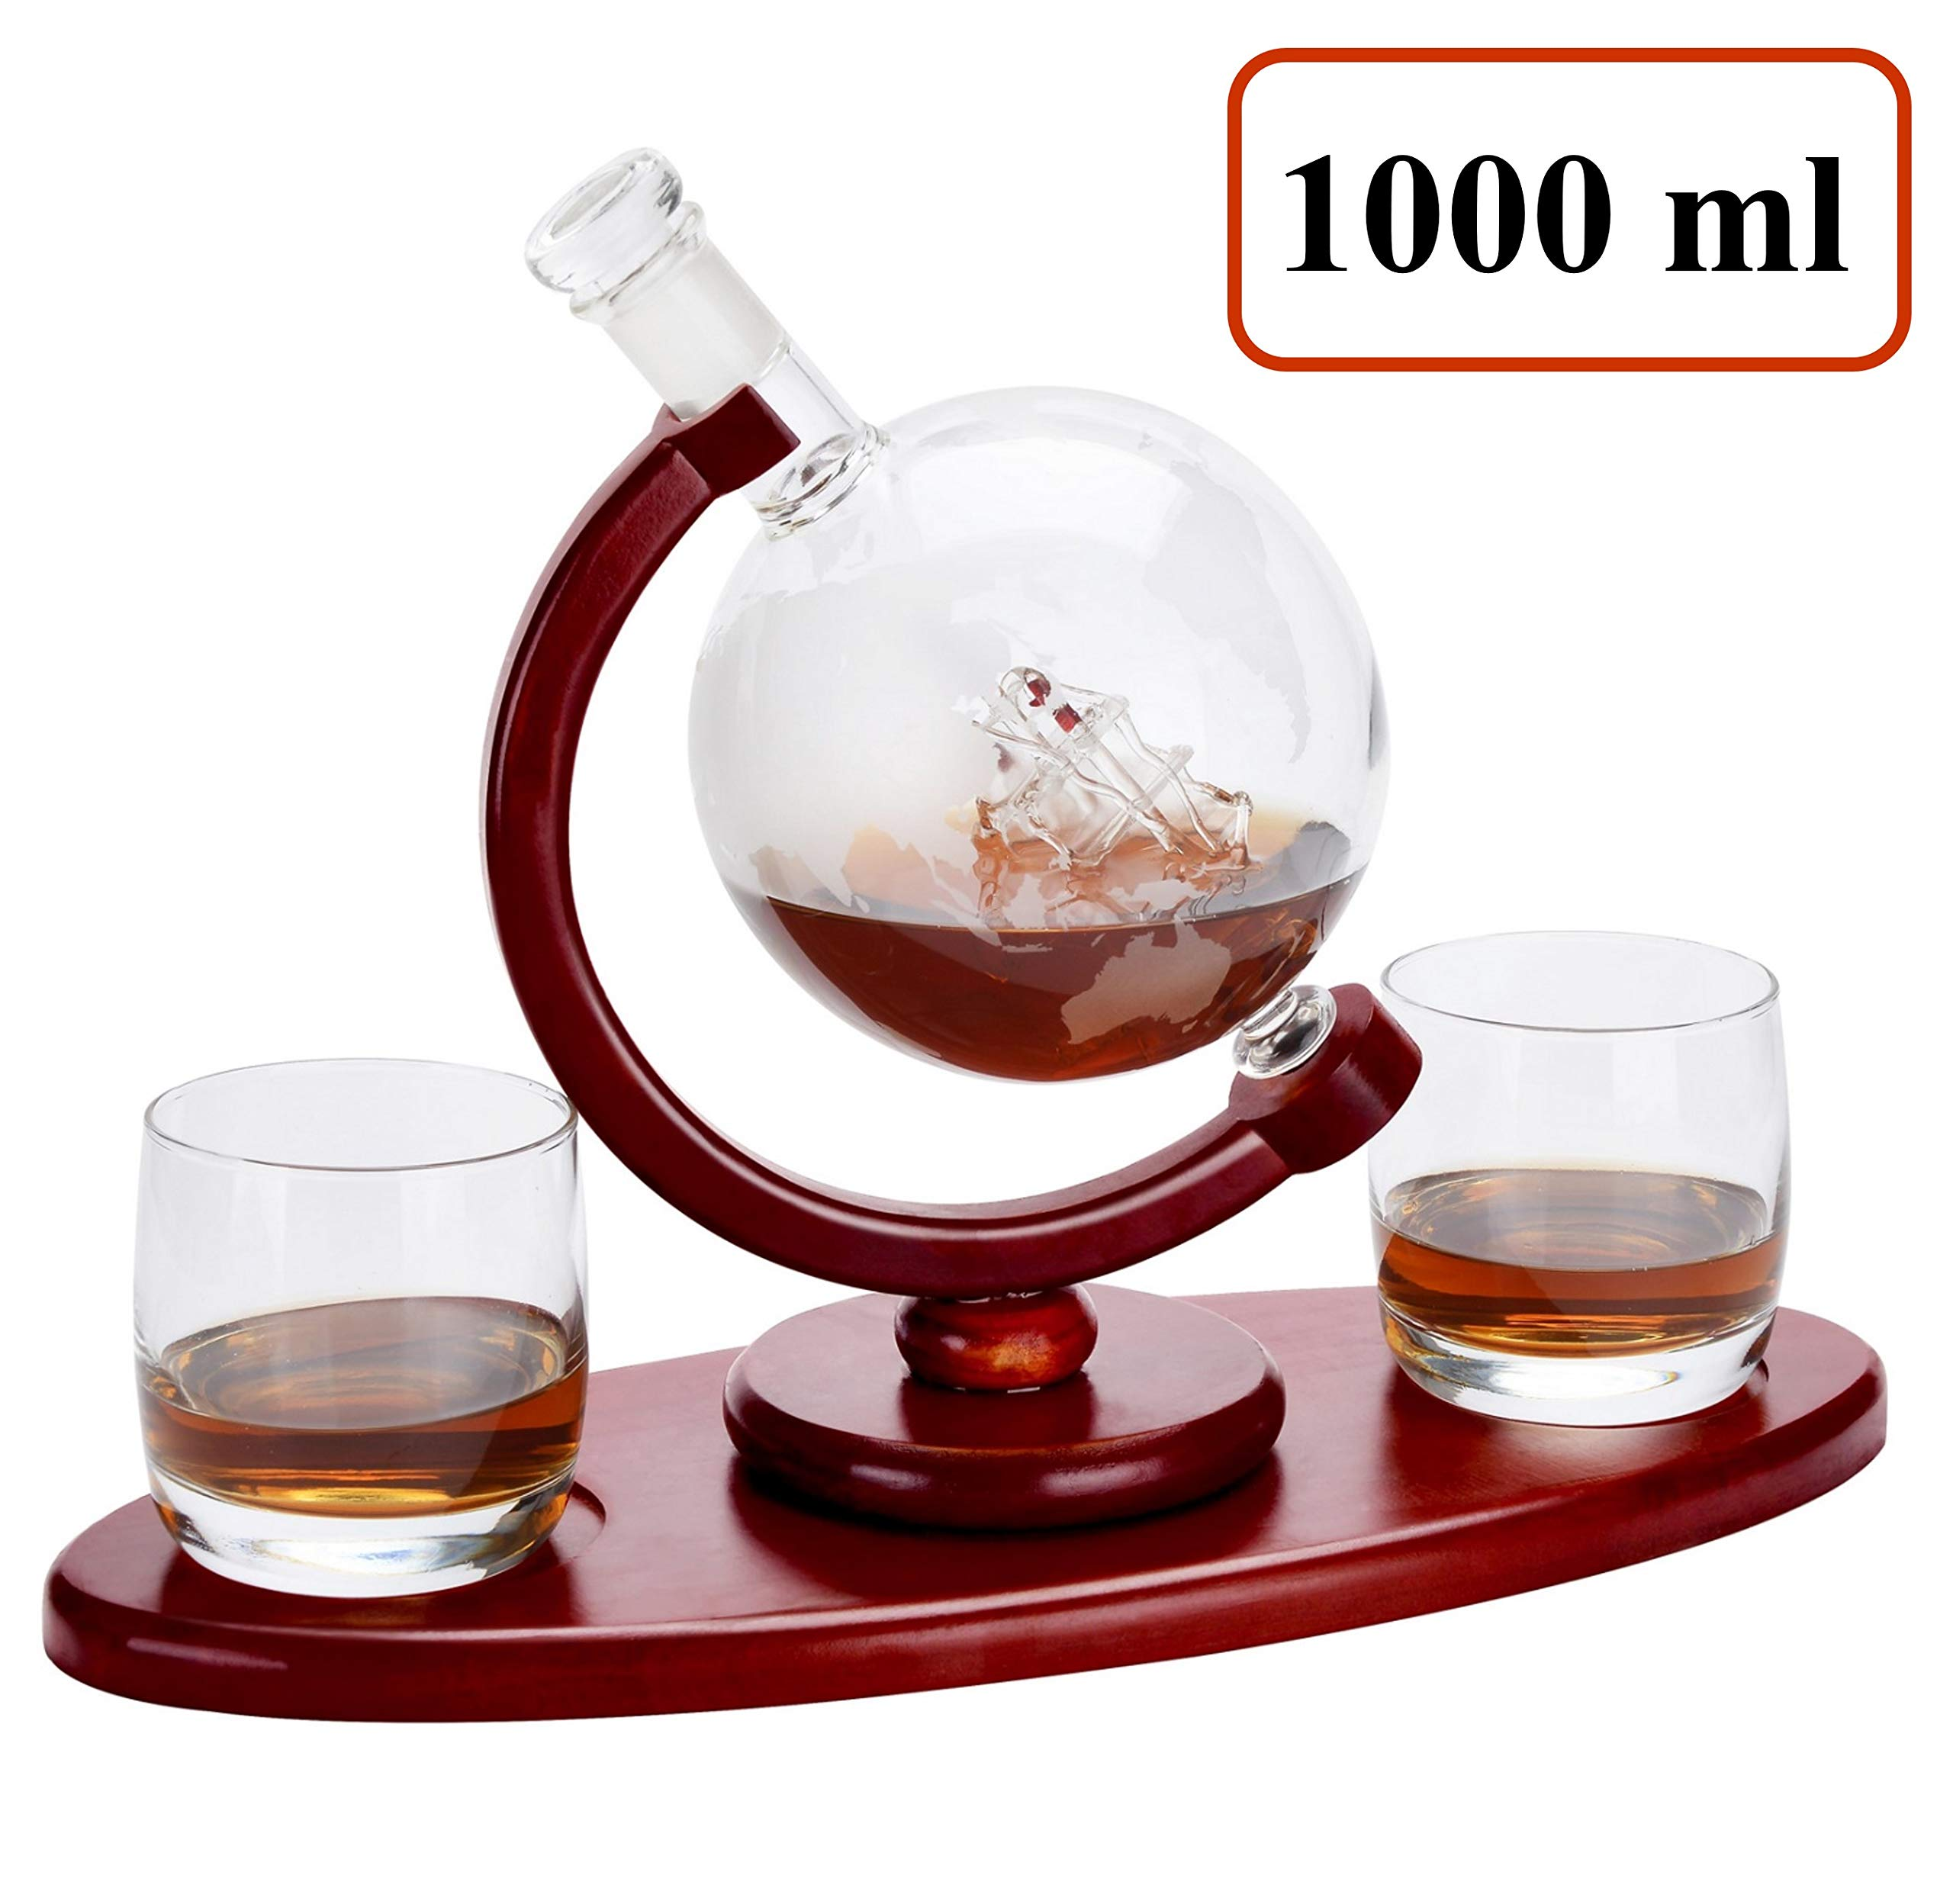 Mecete Whiskey Decanter Globe set 1000 ml with 2 Etched Whisky Glasses-HOME BAR DECOR - for Liquor, Scotch, Bourbon, Vodka, Water, Iced Tea and Juice - 1000ml by Mecete